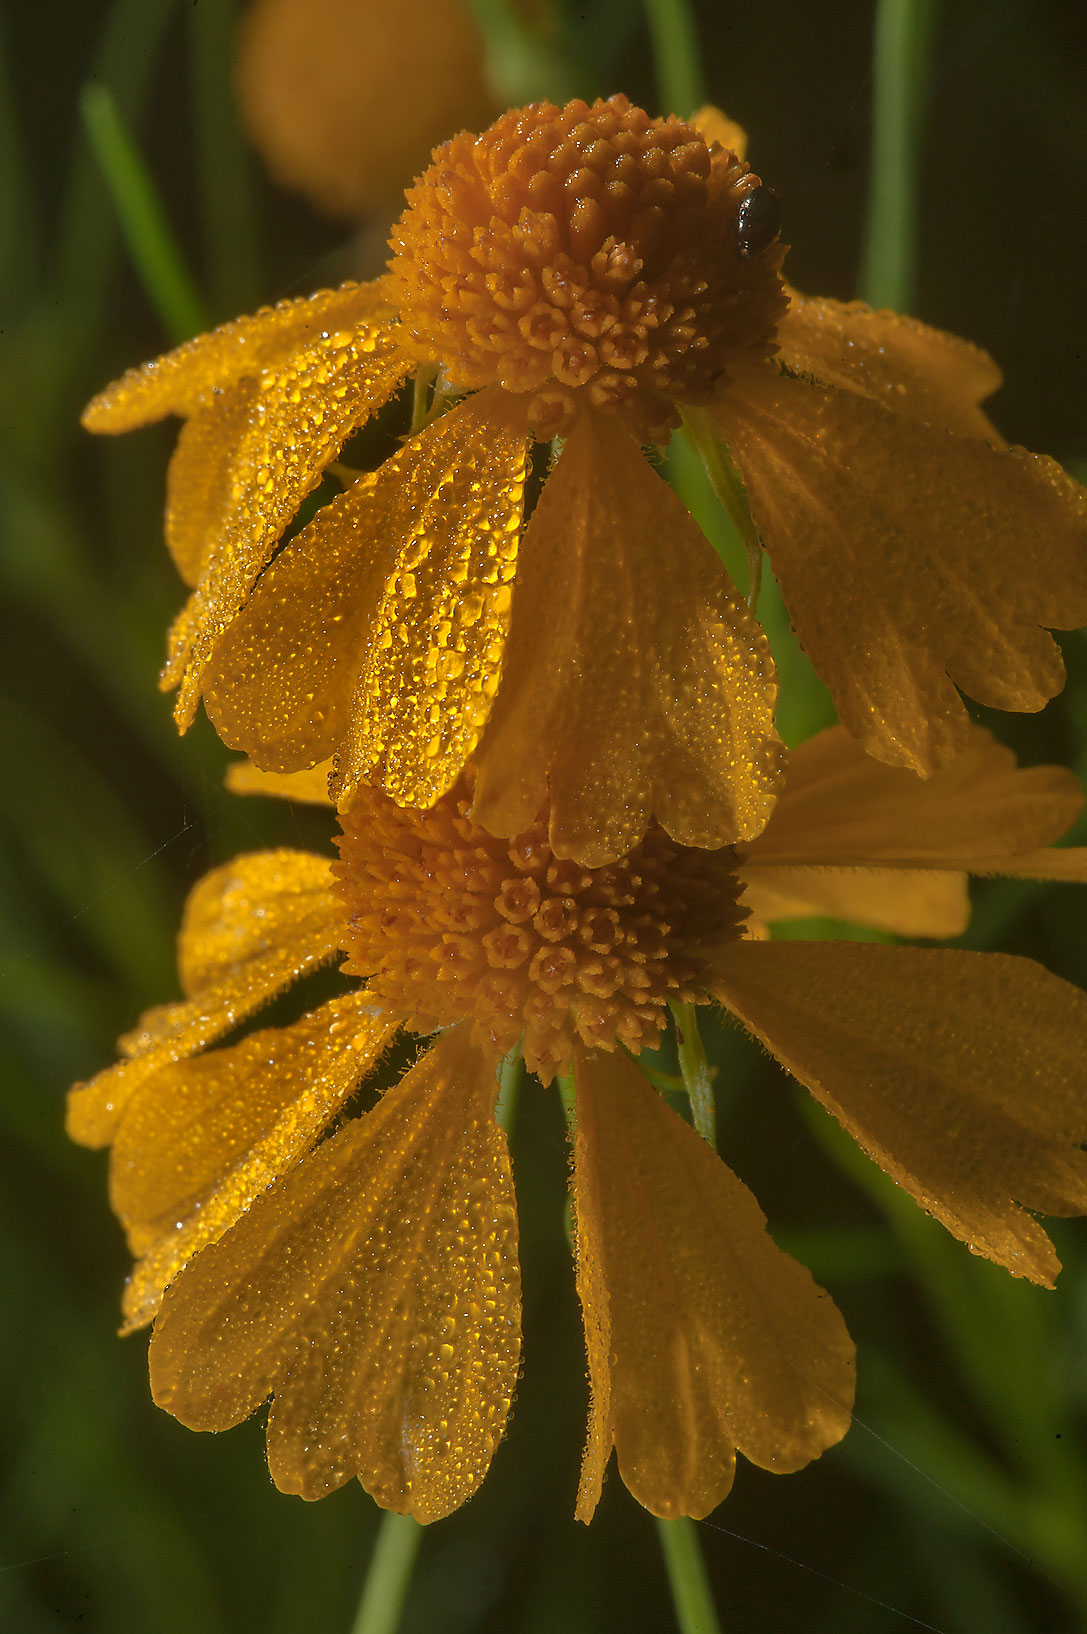 Flowers of sneezeweed (Helenium amarum) in Lick Creek Park. College Station, Texas